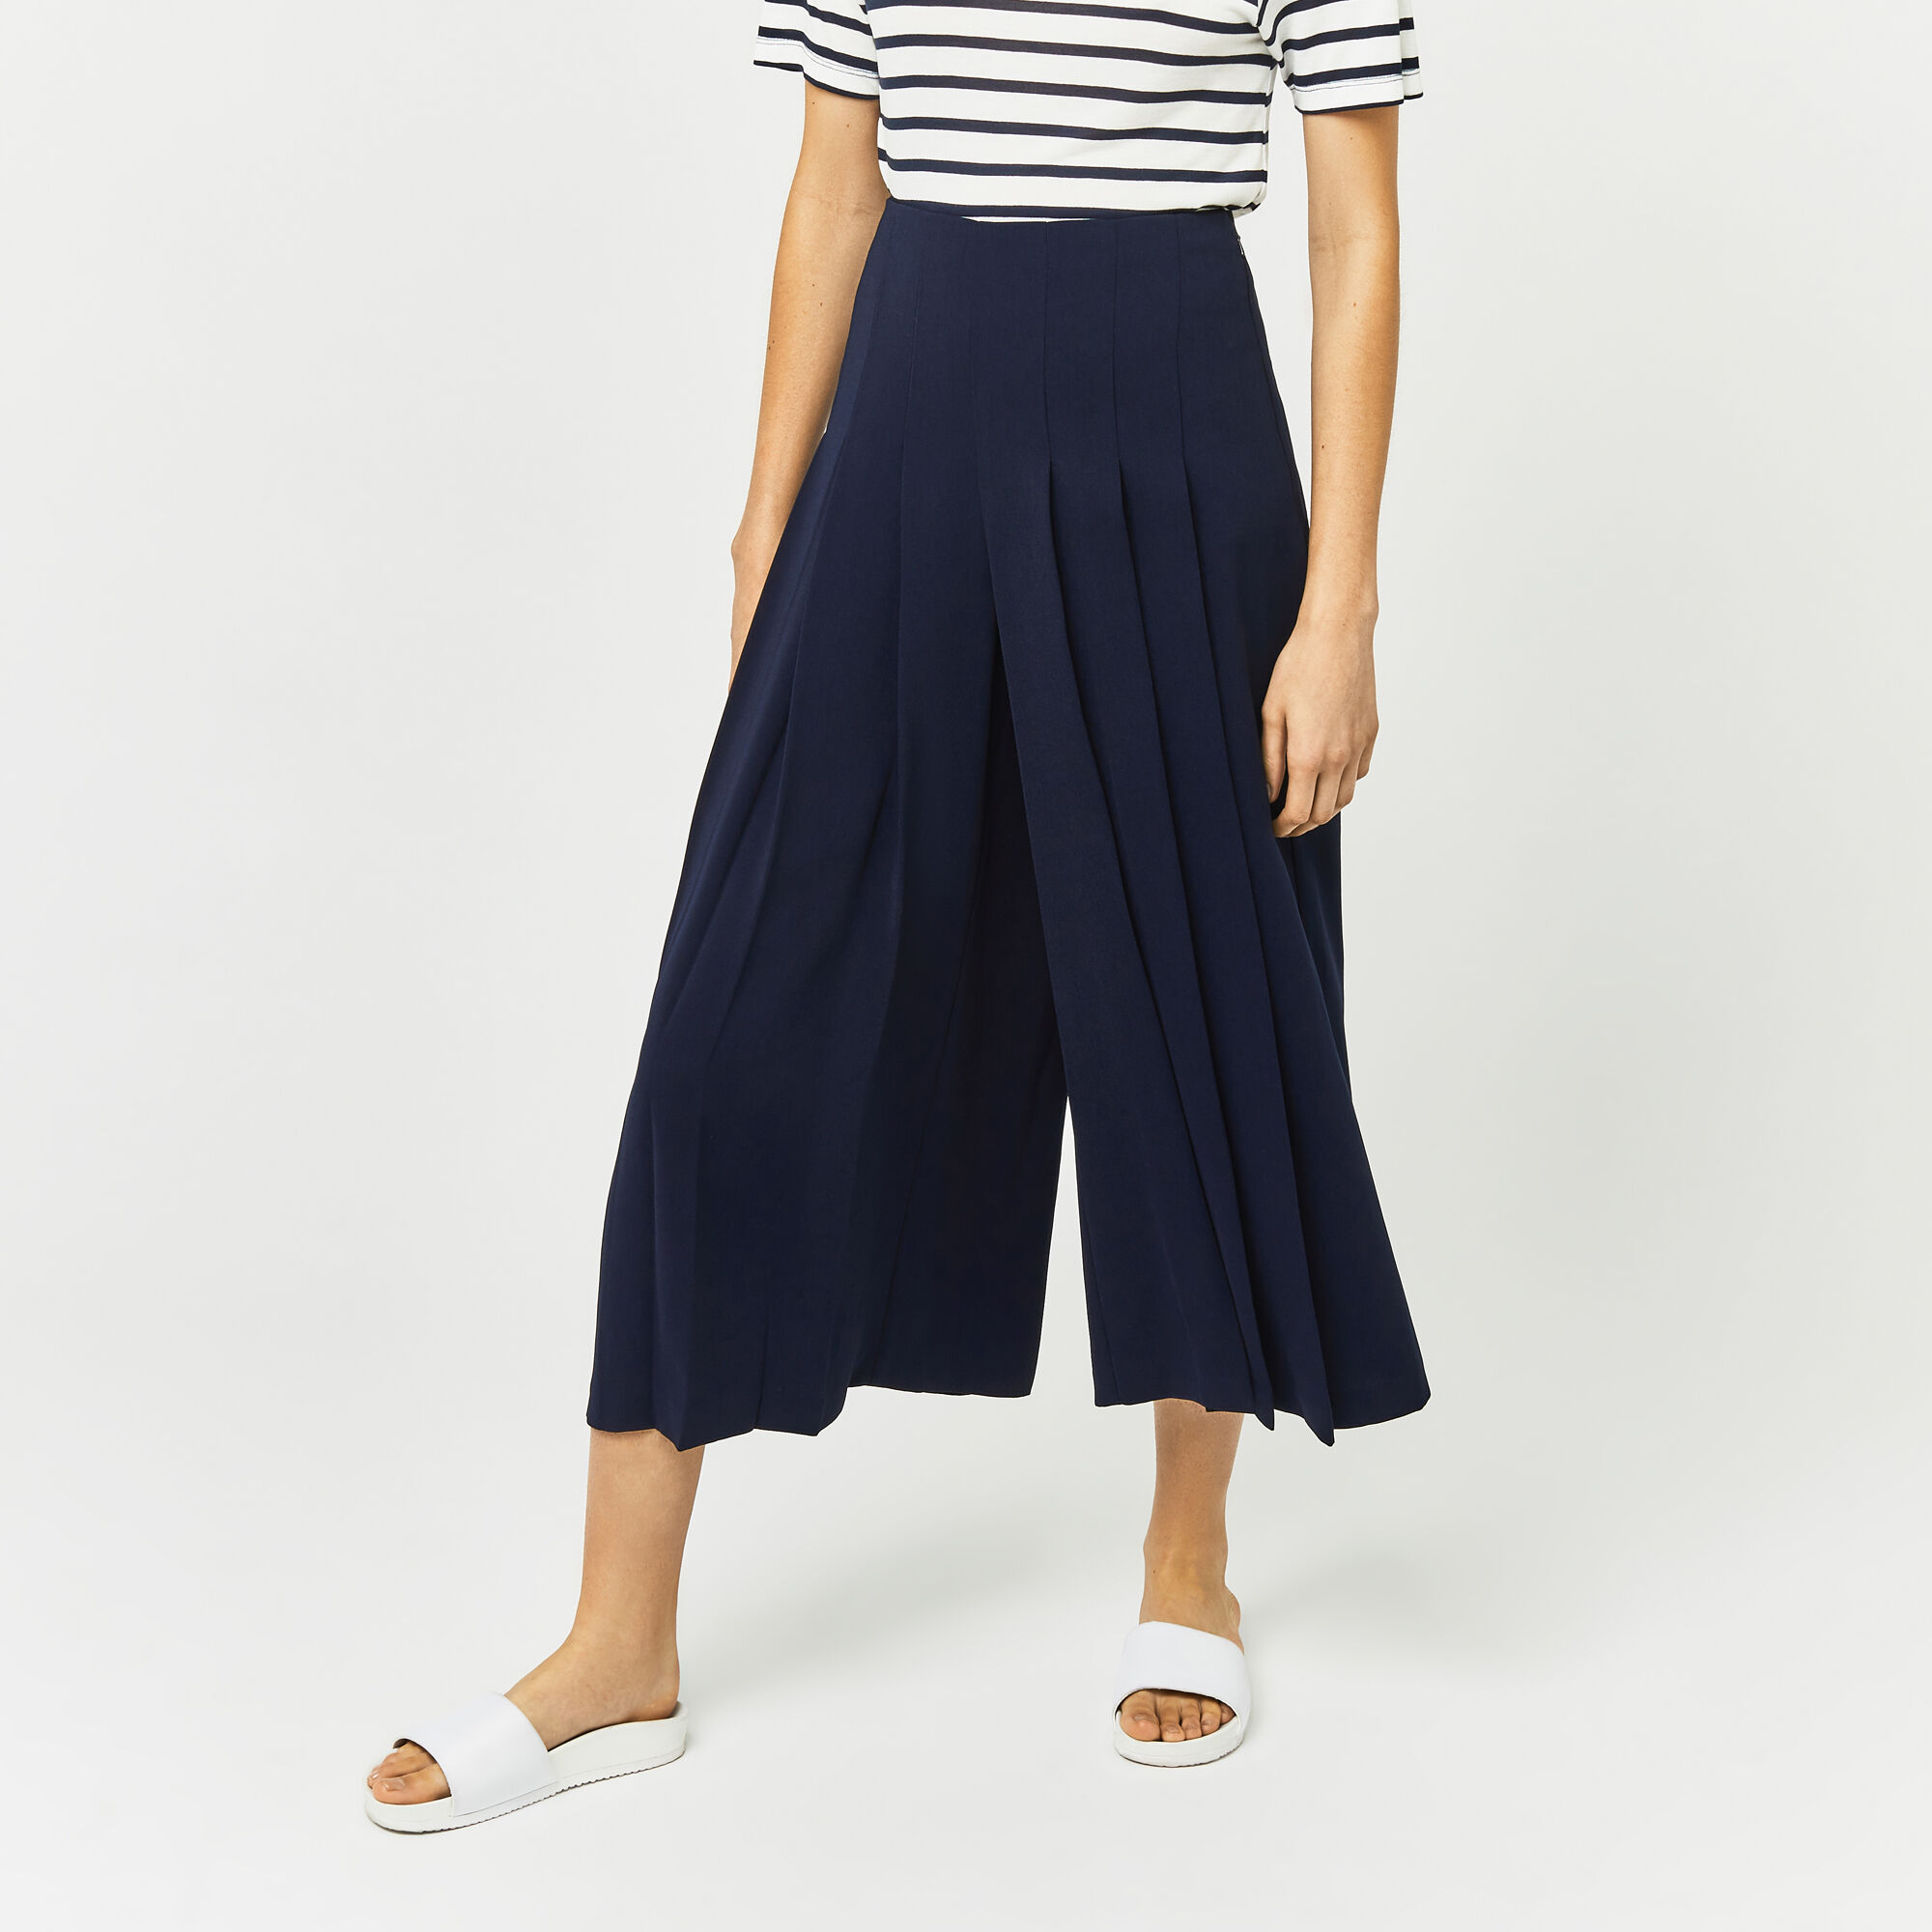 Warehouse, PLEATED CULOTTES Navy 1